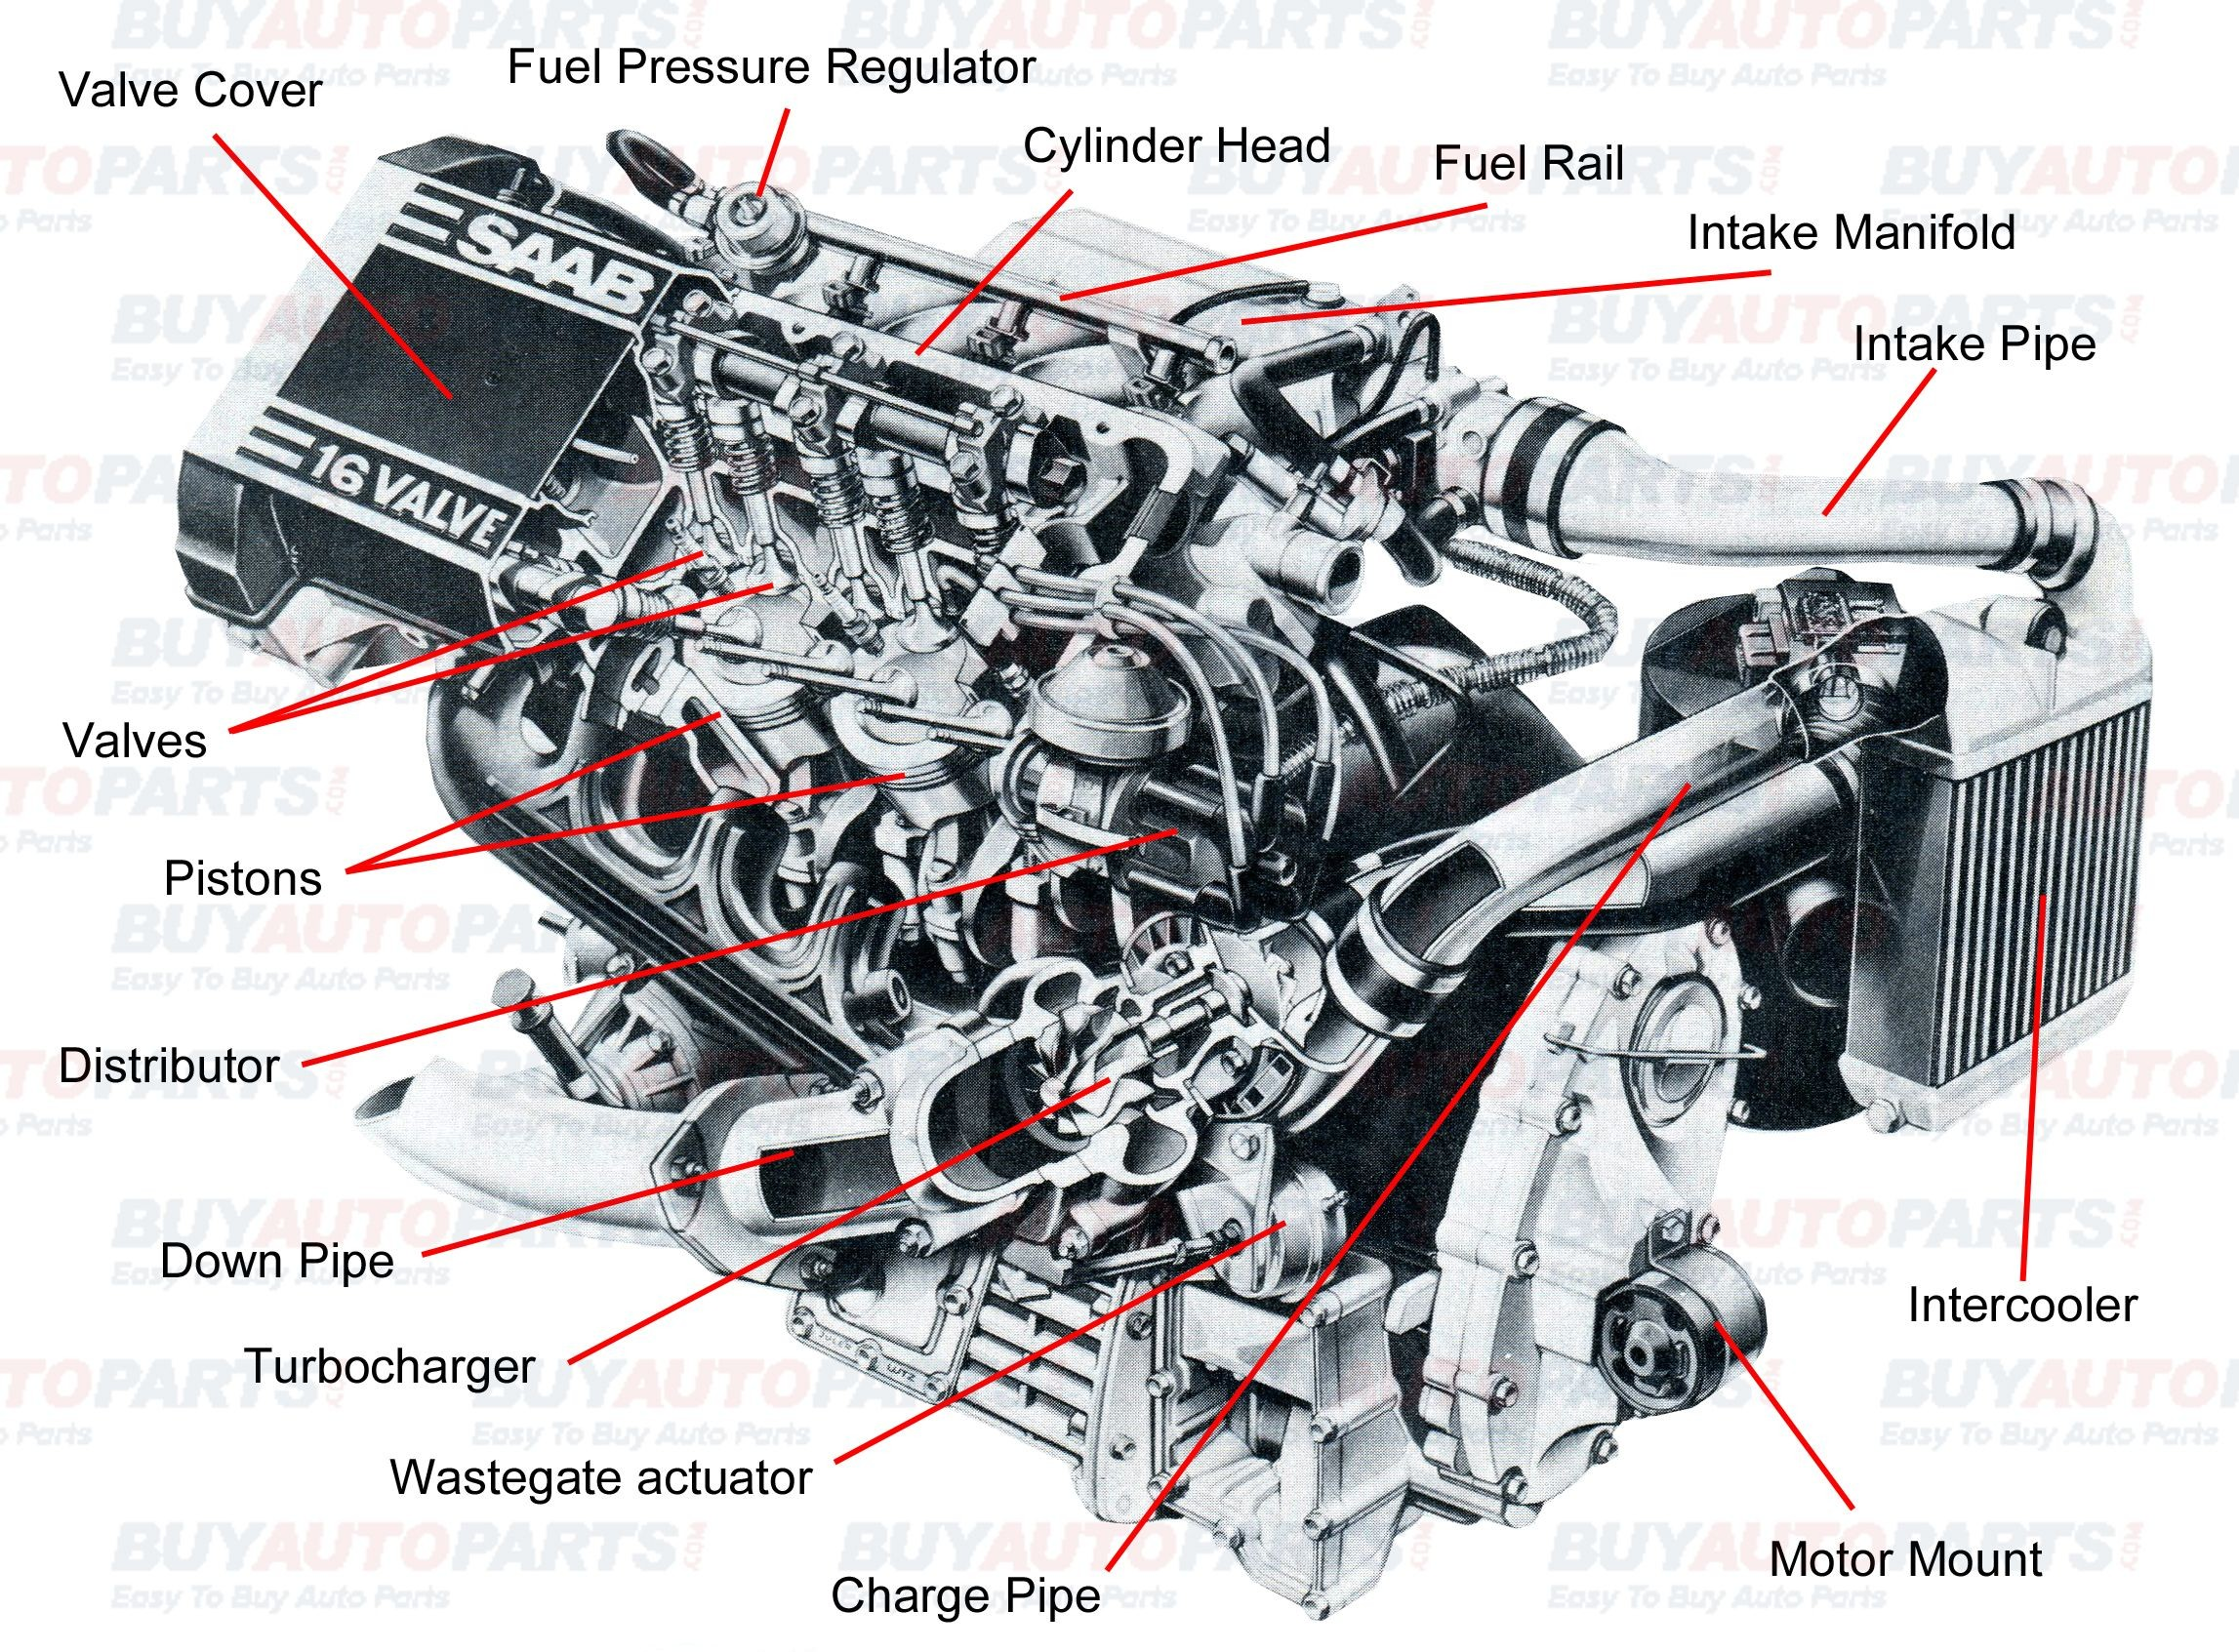 4 Stroke Engine Parts Diagram Pin by Jimmiejanet Testellamwfz On What Does An Engine with Turbo Of 4 Stroke Engine Parts Diagram